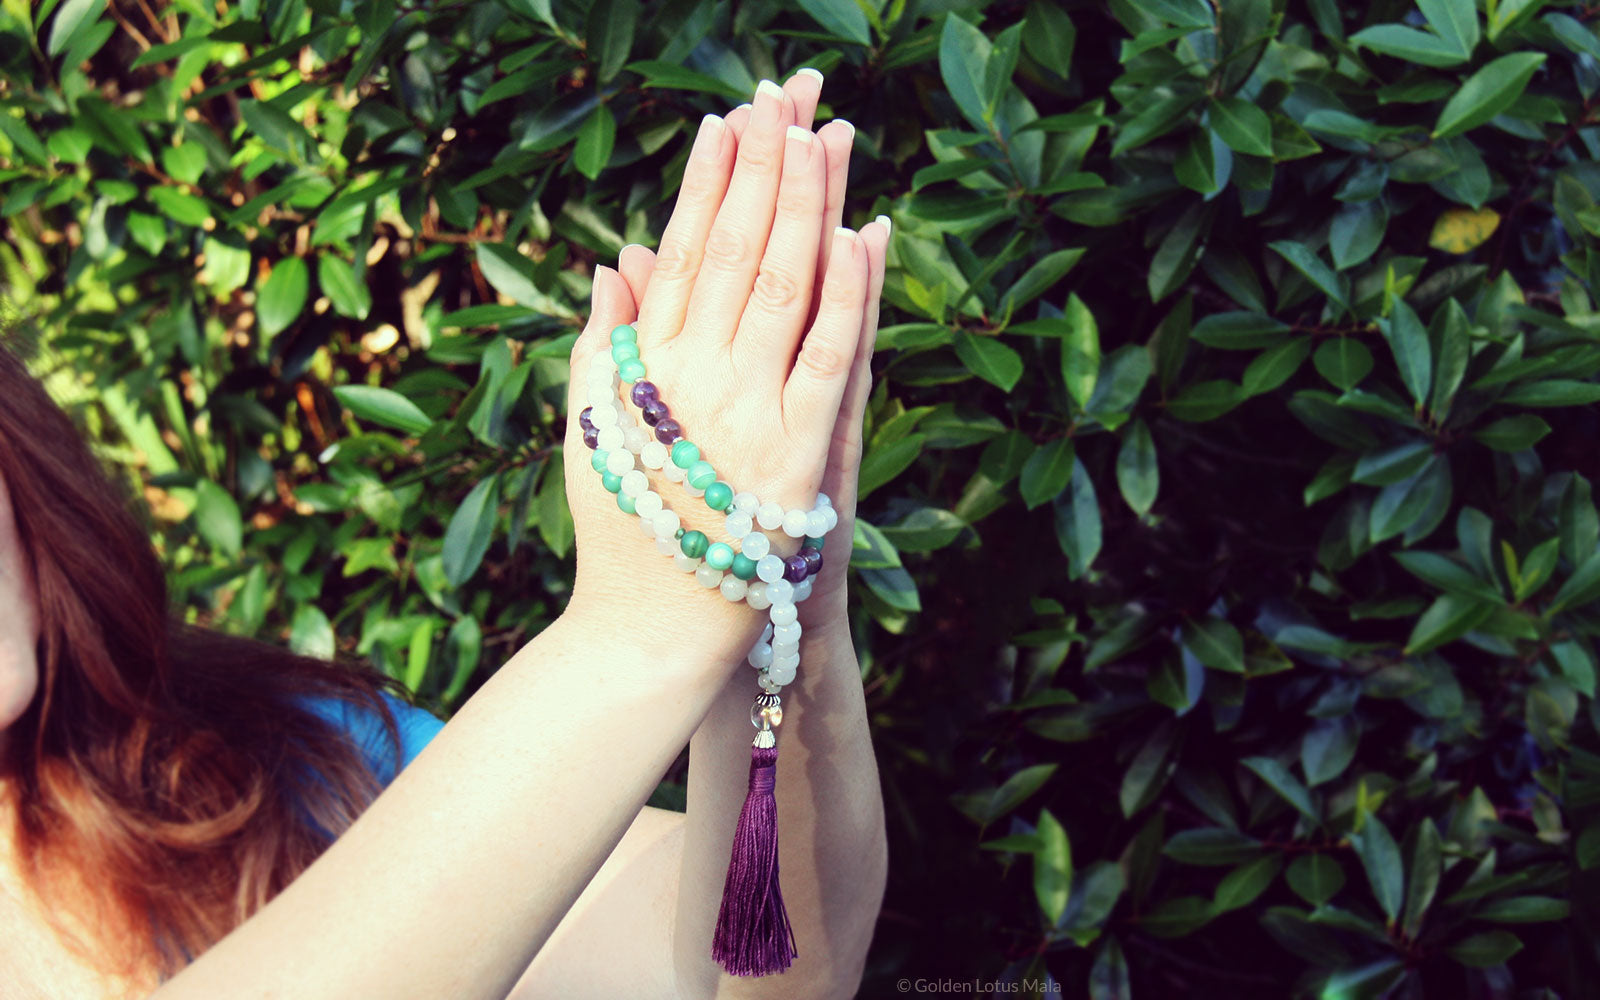 Holding Mala Beads in Prayer Pose